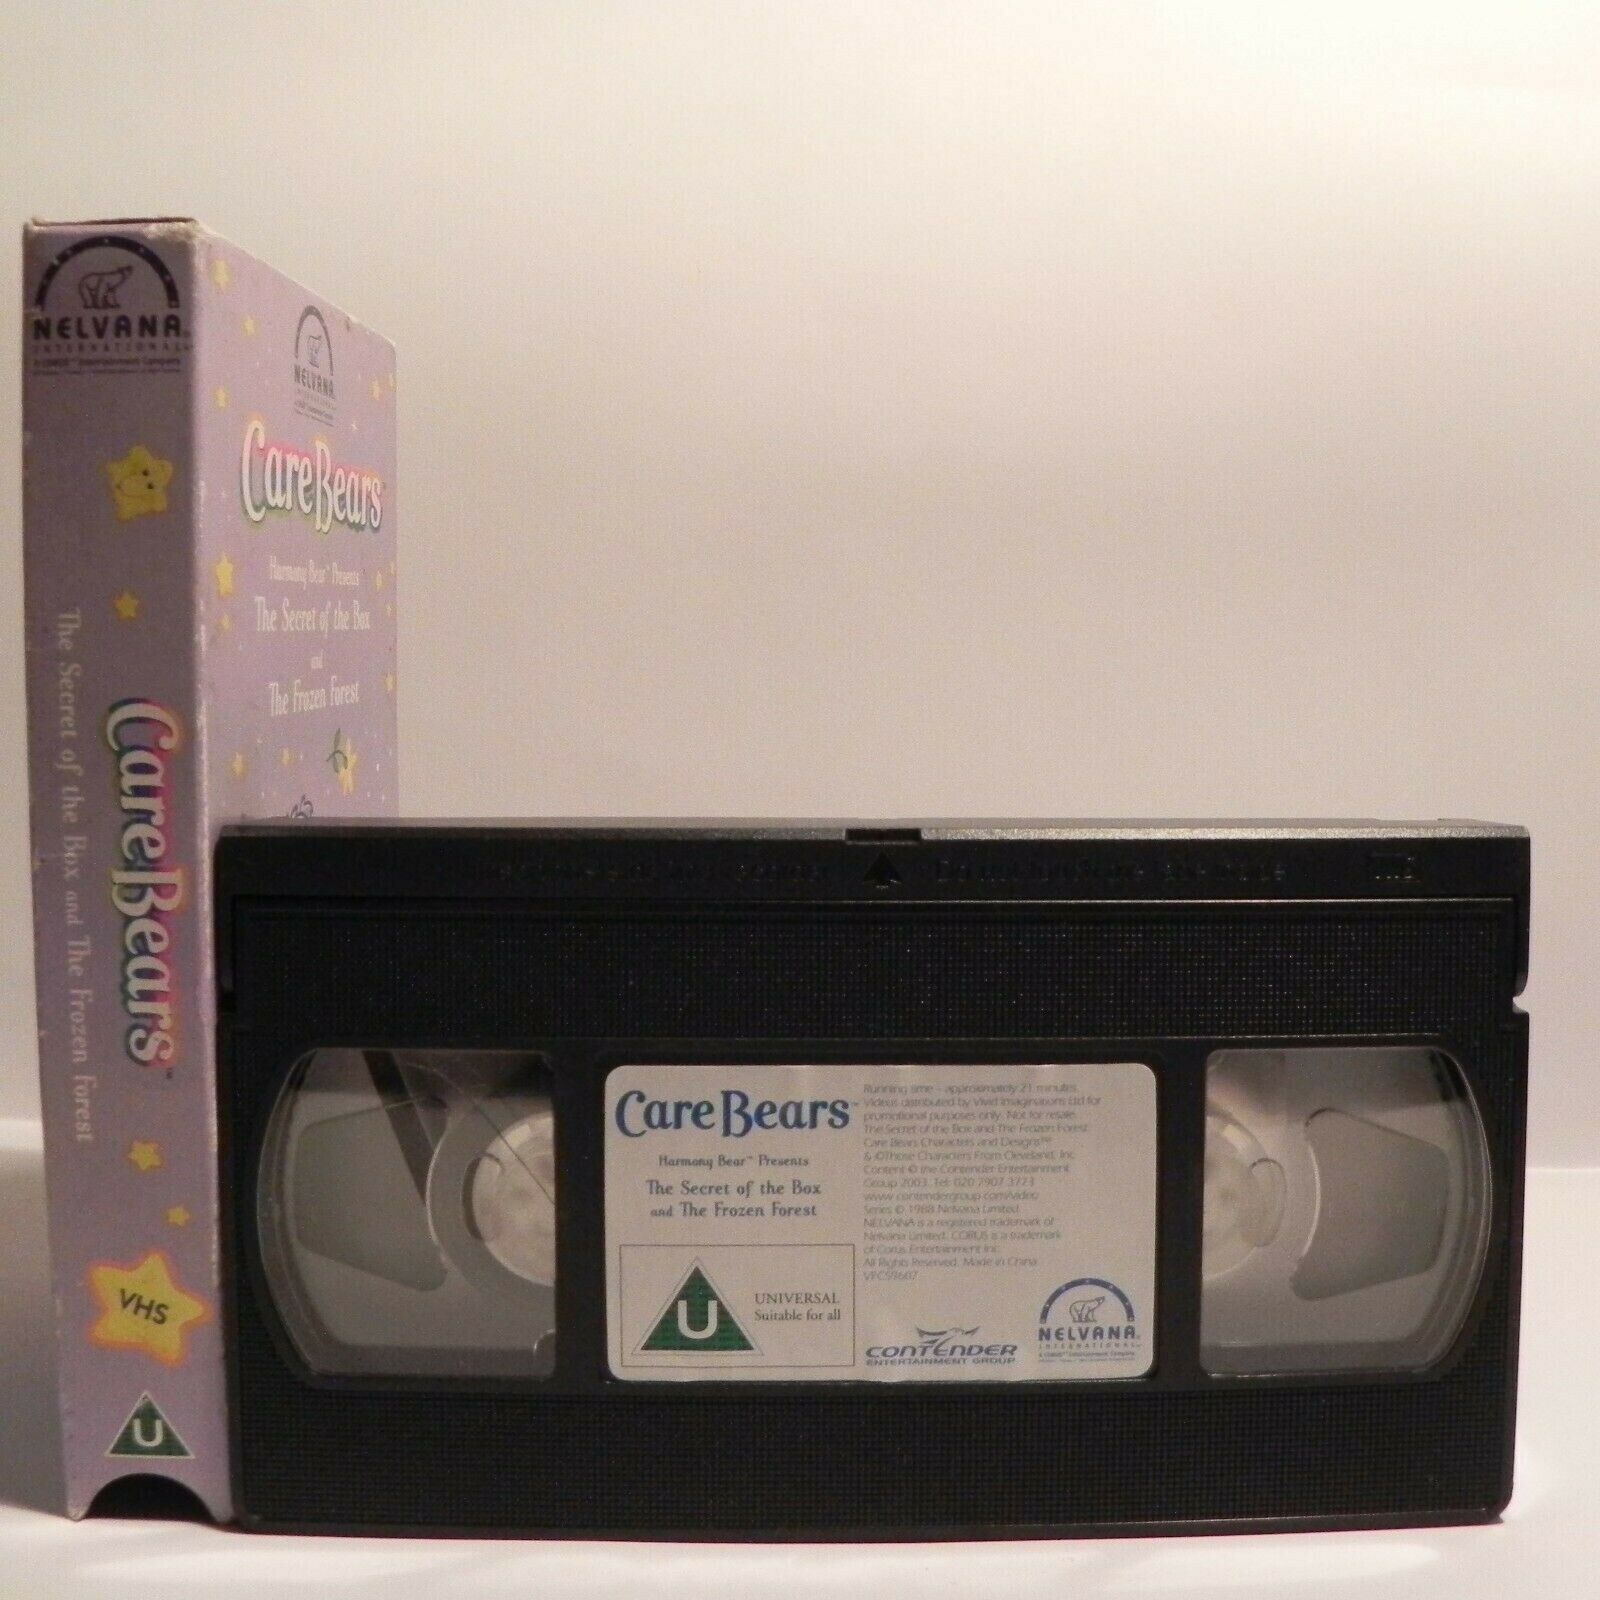 Care Bears - Carton Box - Classic Animation - Exciting Adventures - Kids - VHS